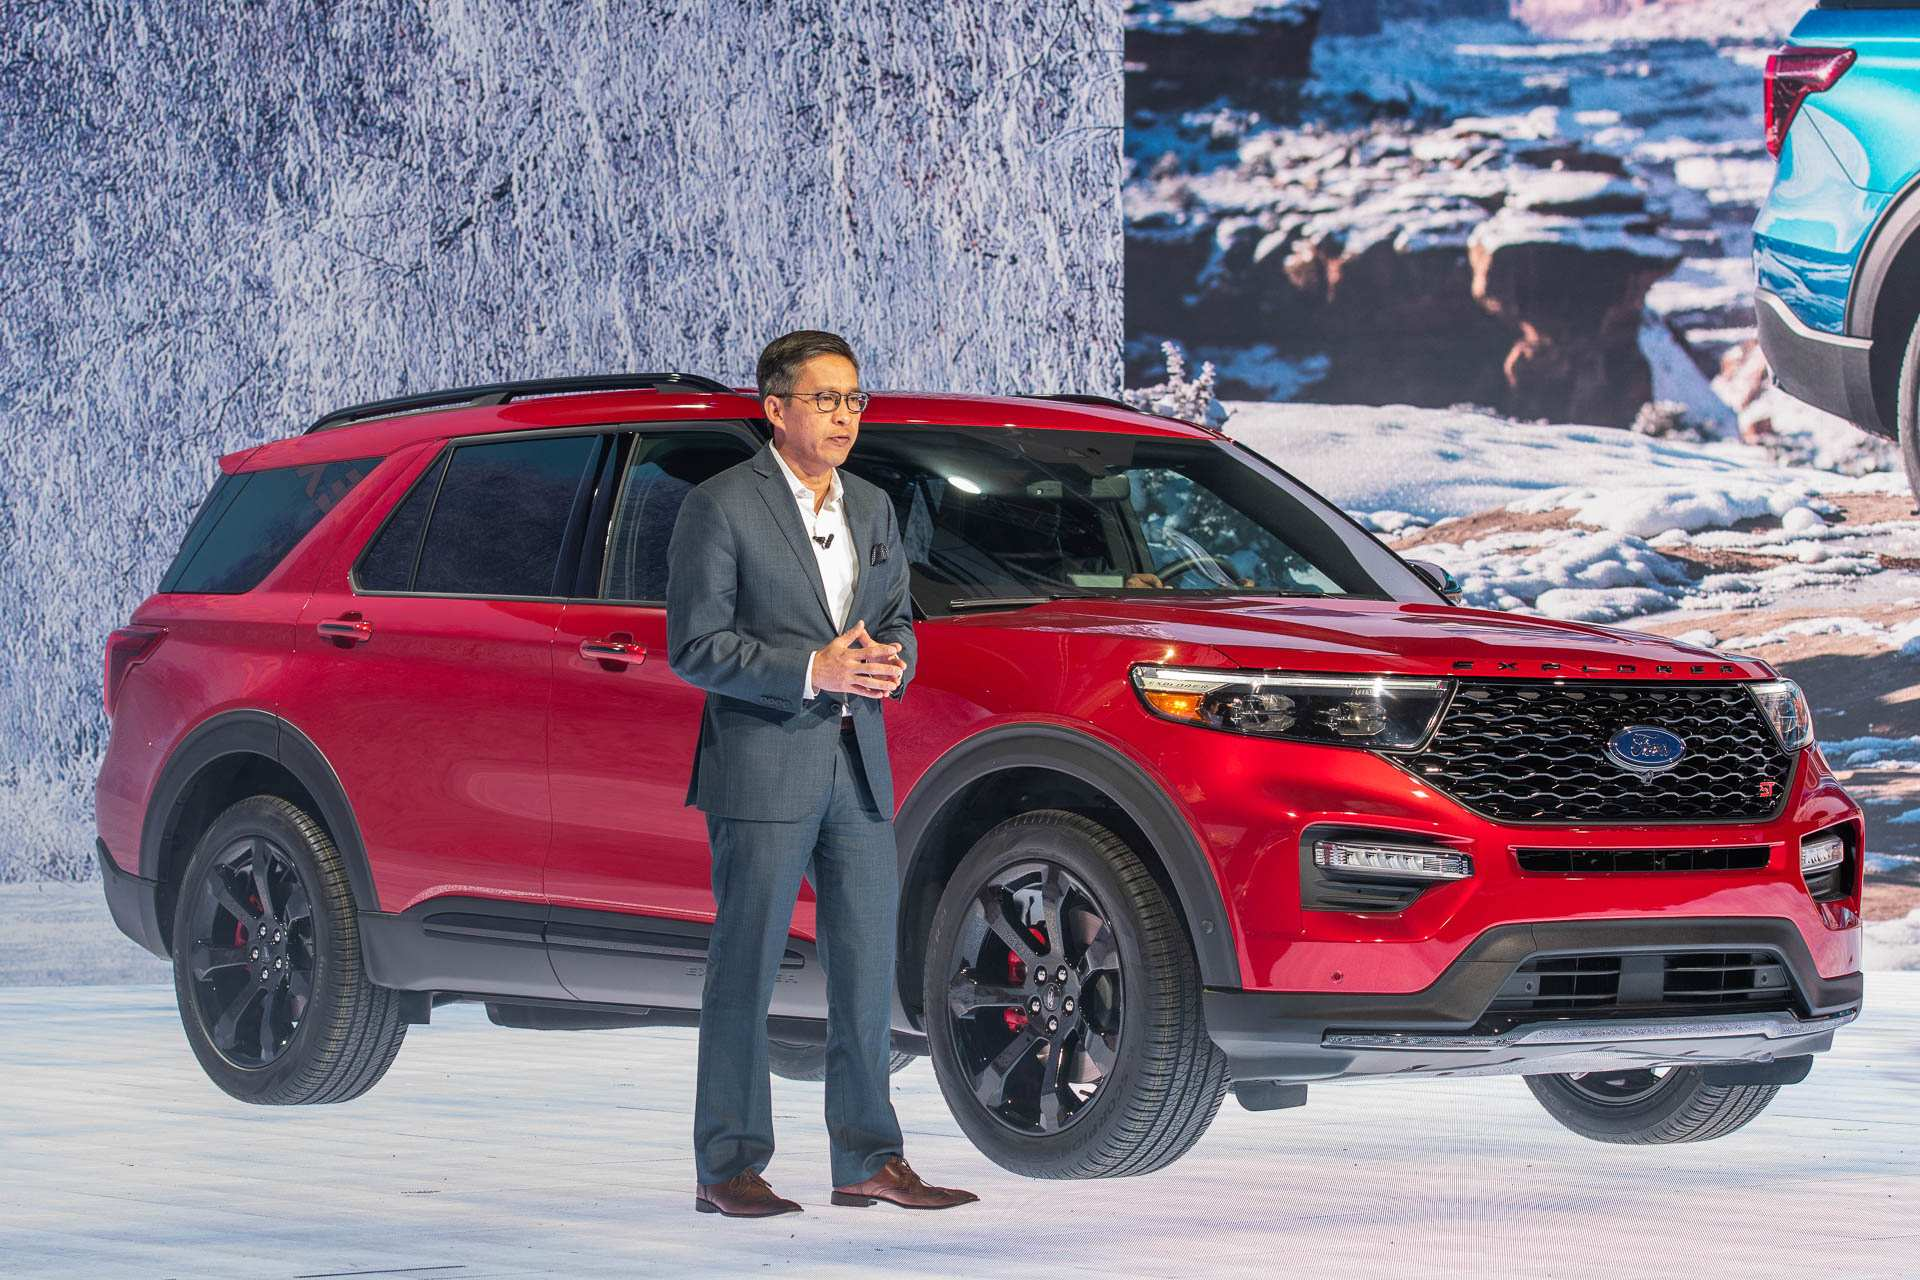 69 New 2020 Ford Explorer Hybrid Mpg Model